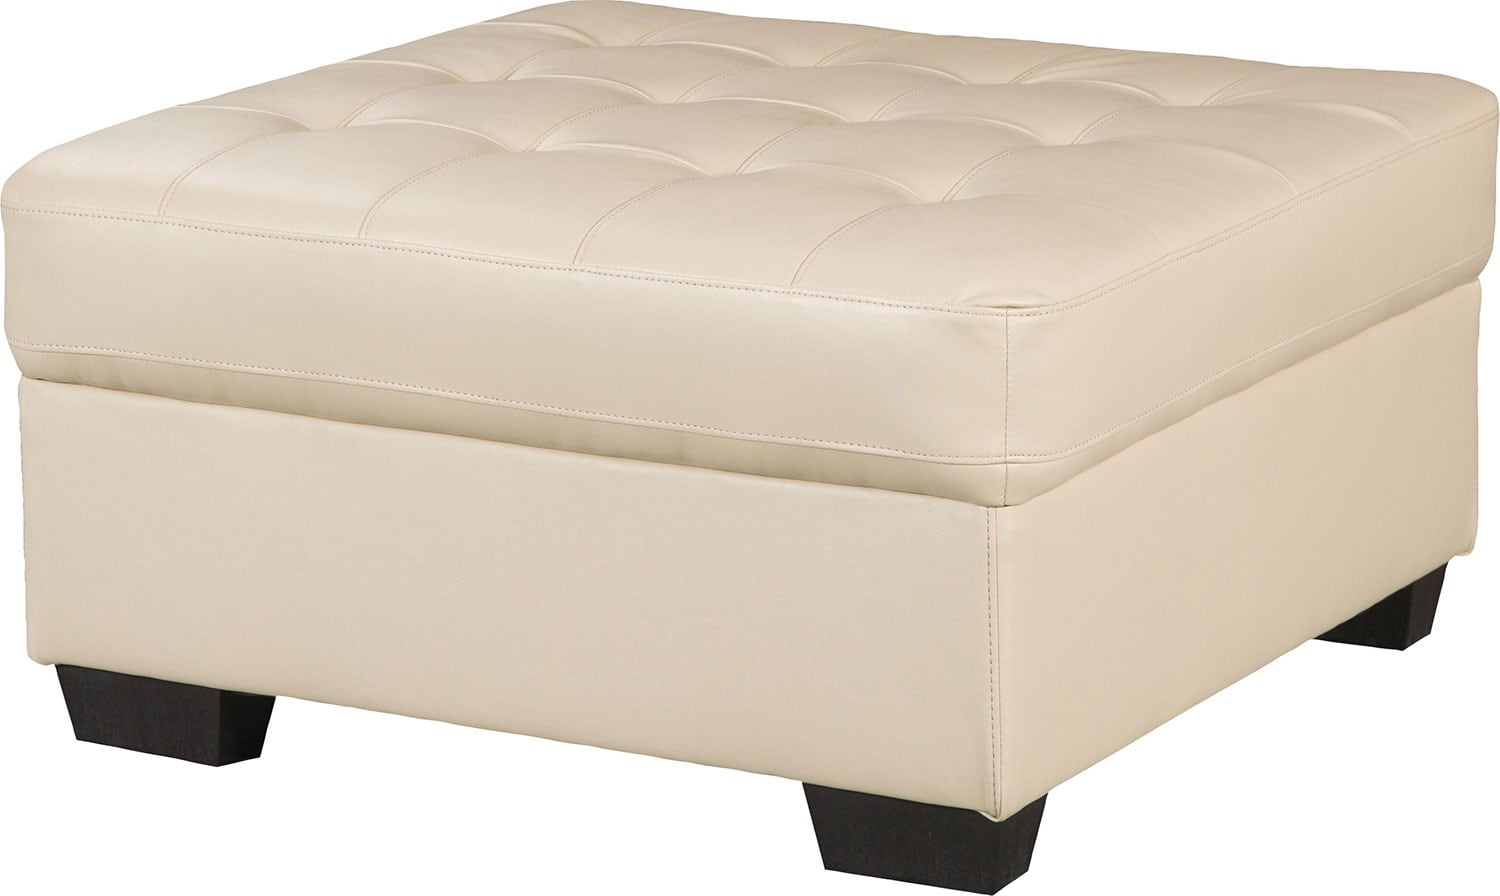 Tobi Bonded Leather Ottoman - Cream